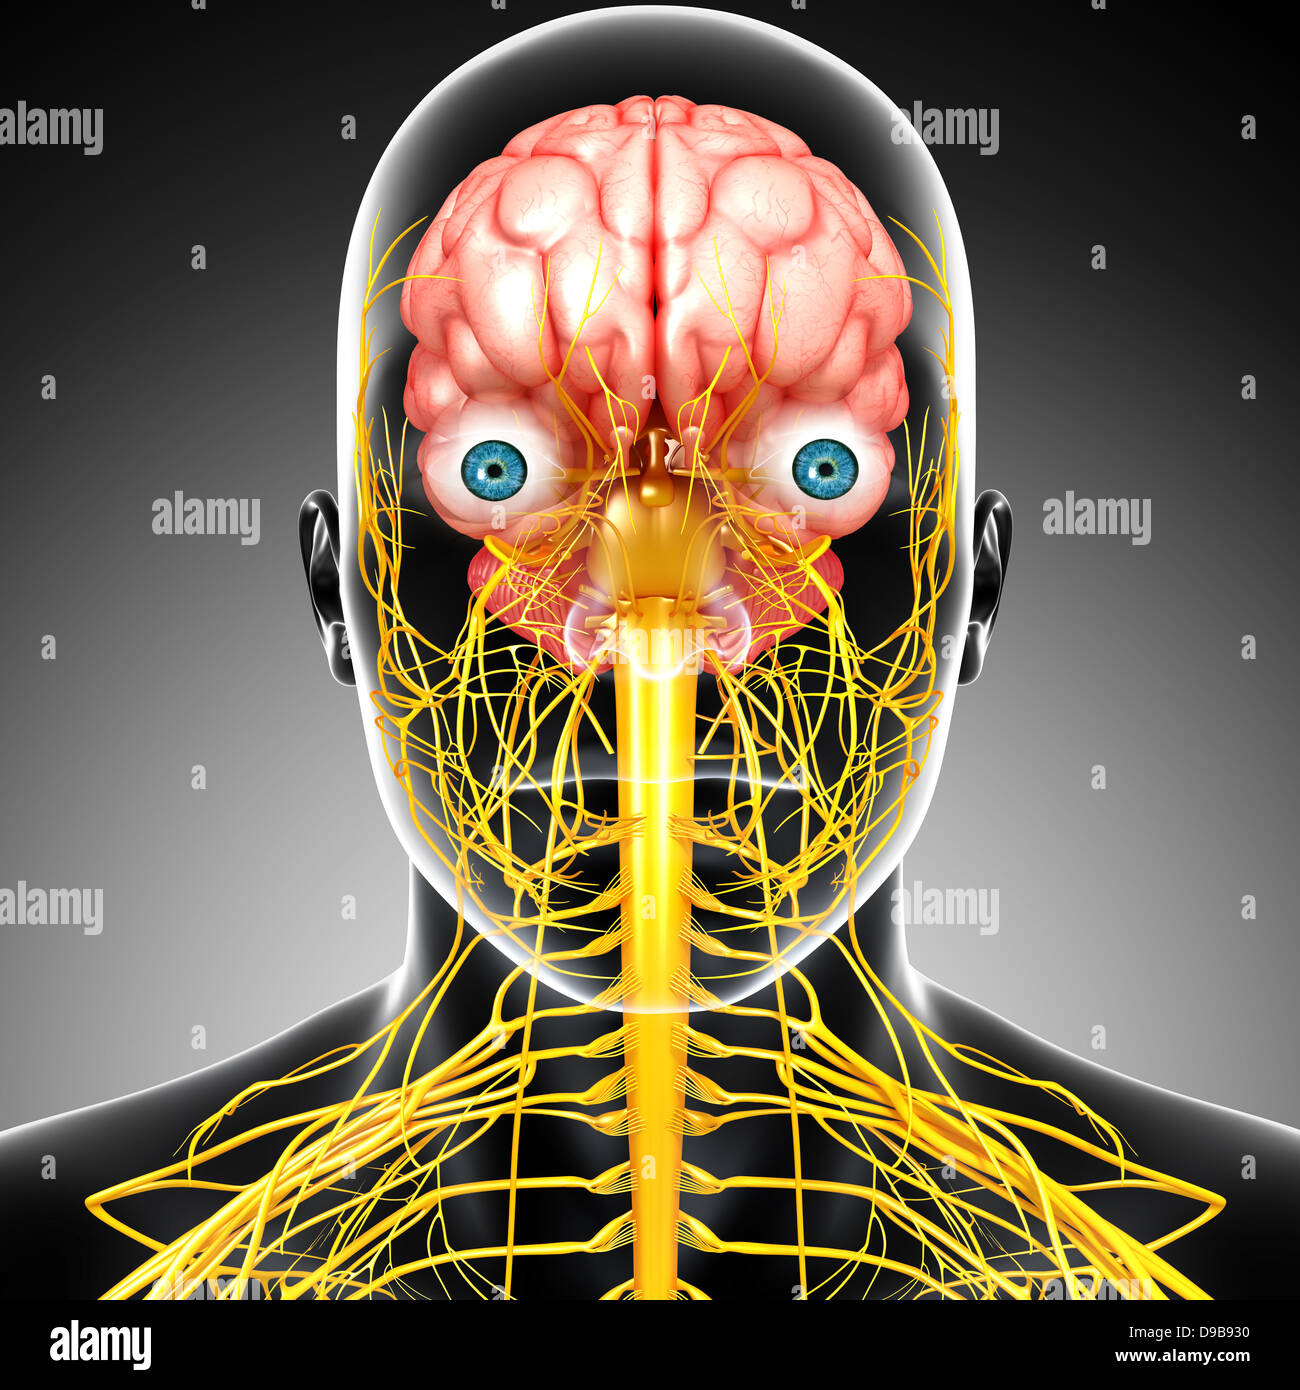 nervous system of human head anatomy in x-ray form - Stock Image